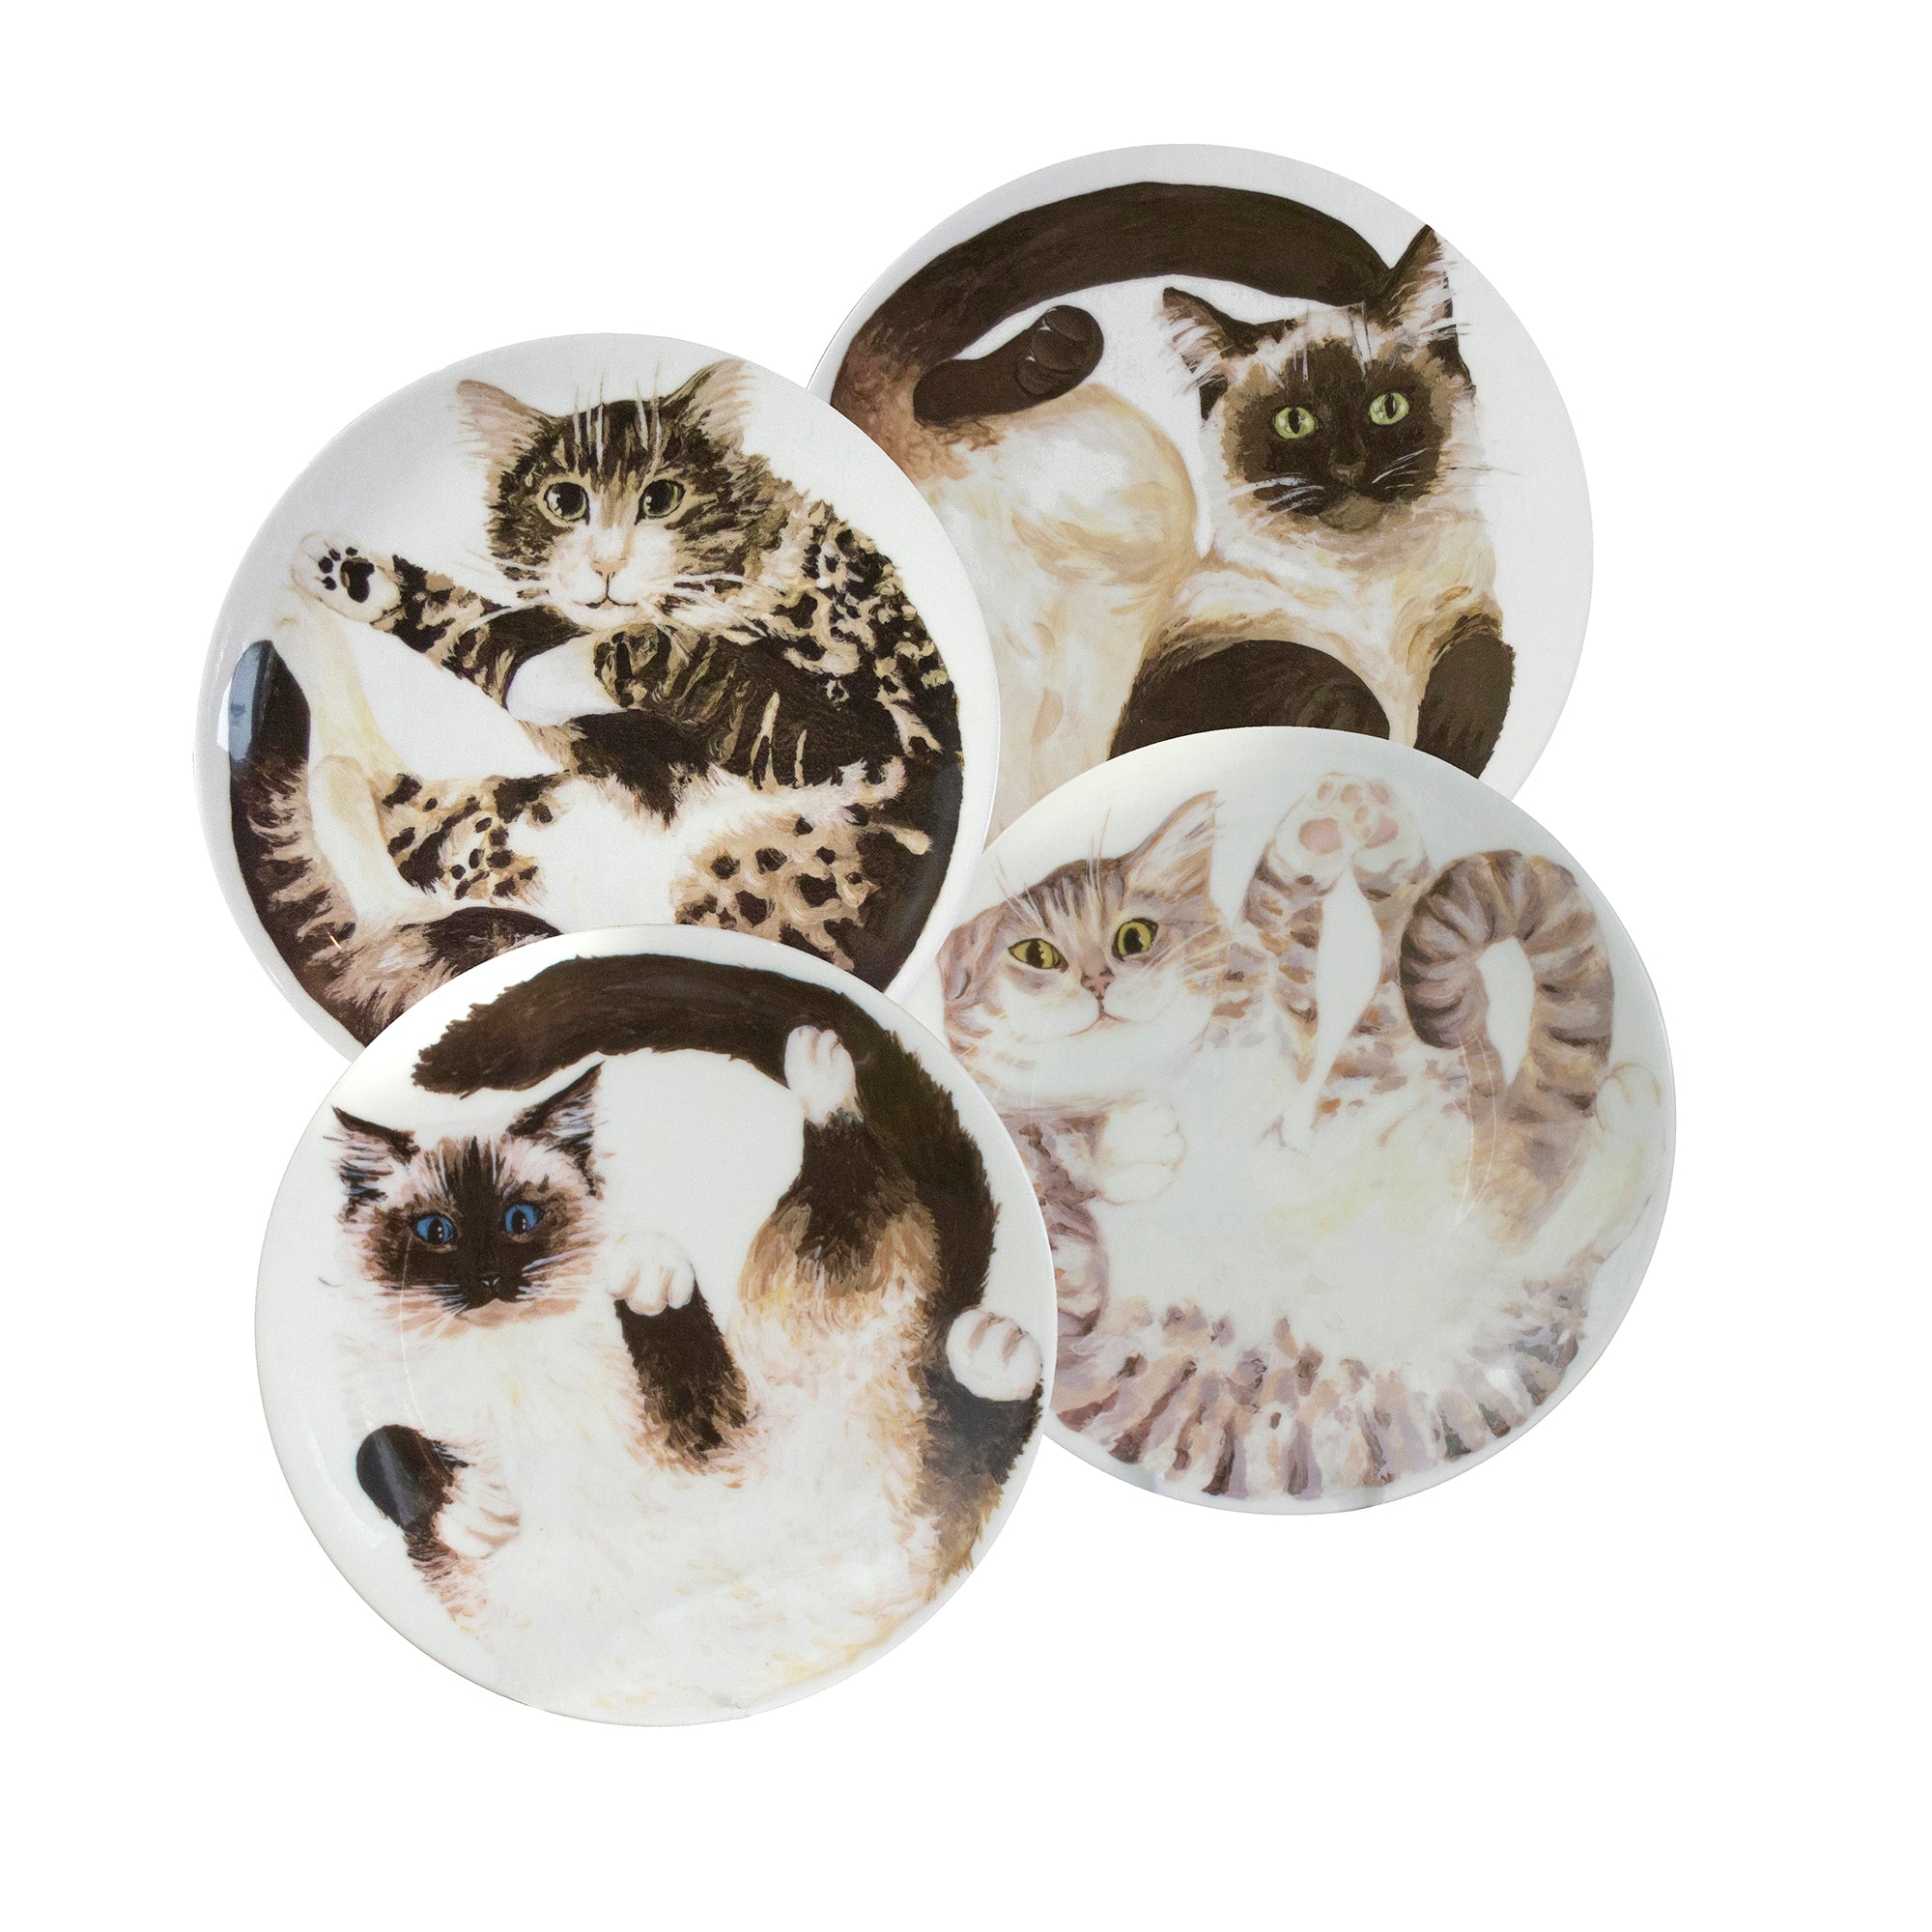 Cats on plates. 4 china coupe plates with a illustrated cats on them. Catnap Design London.